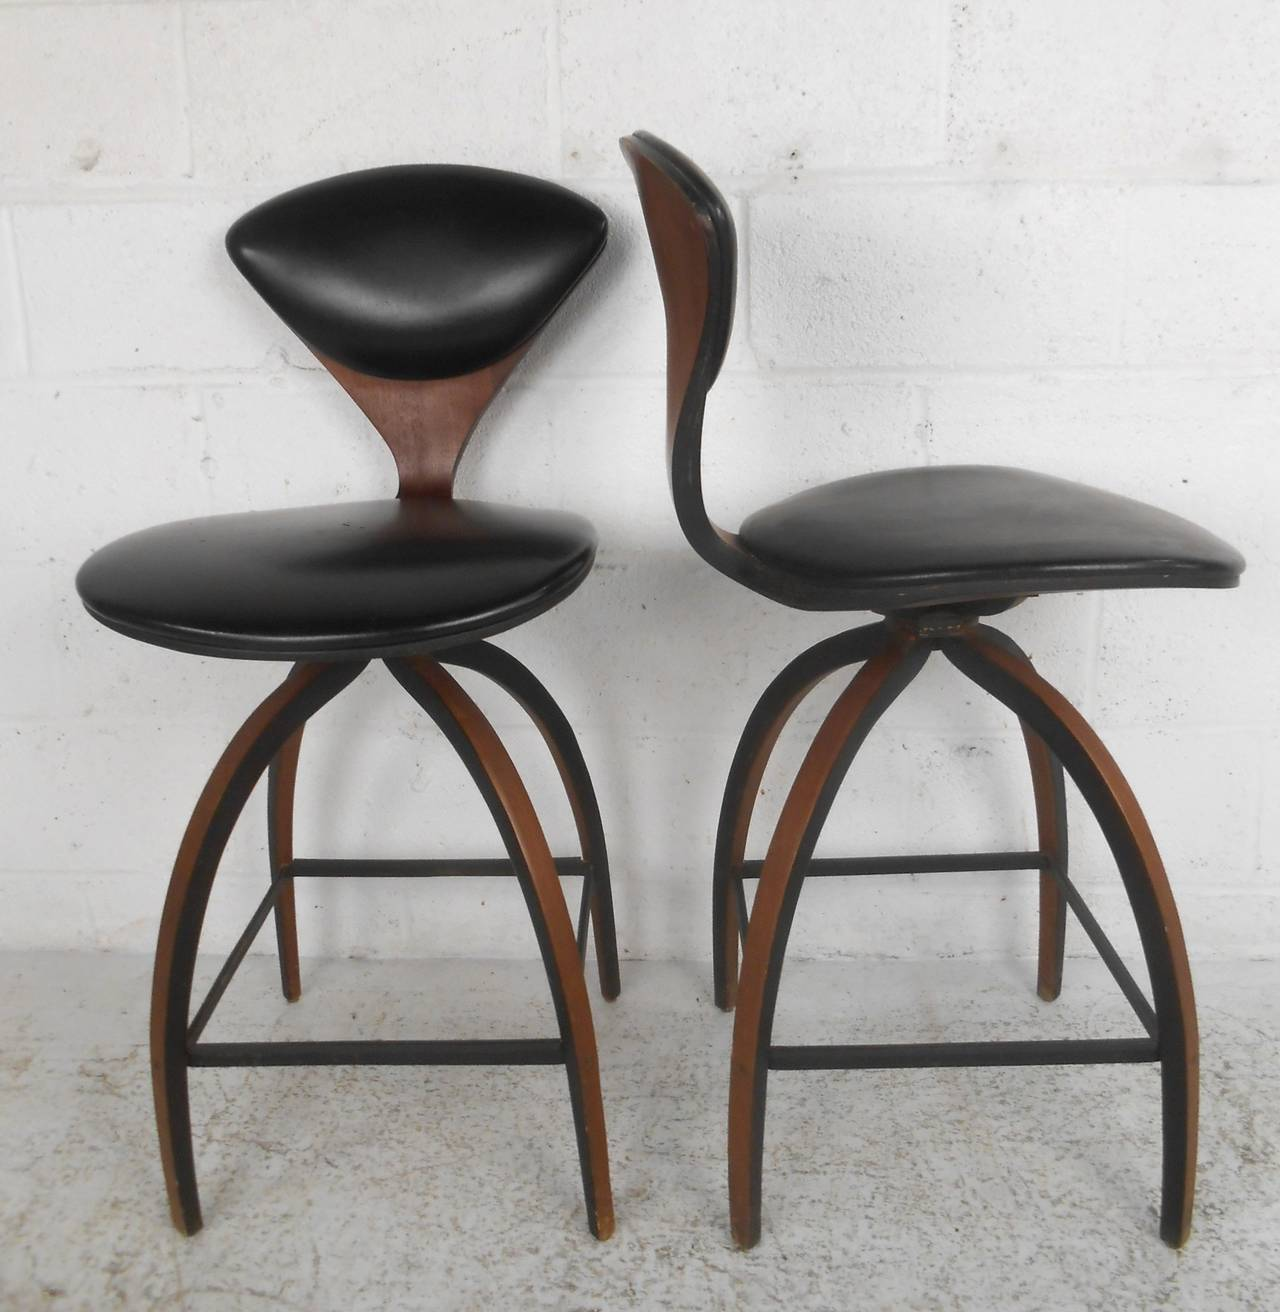 Pick mid century modern swivel bar stools   for your kitchen